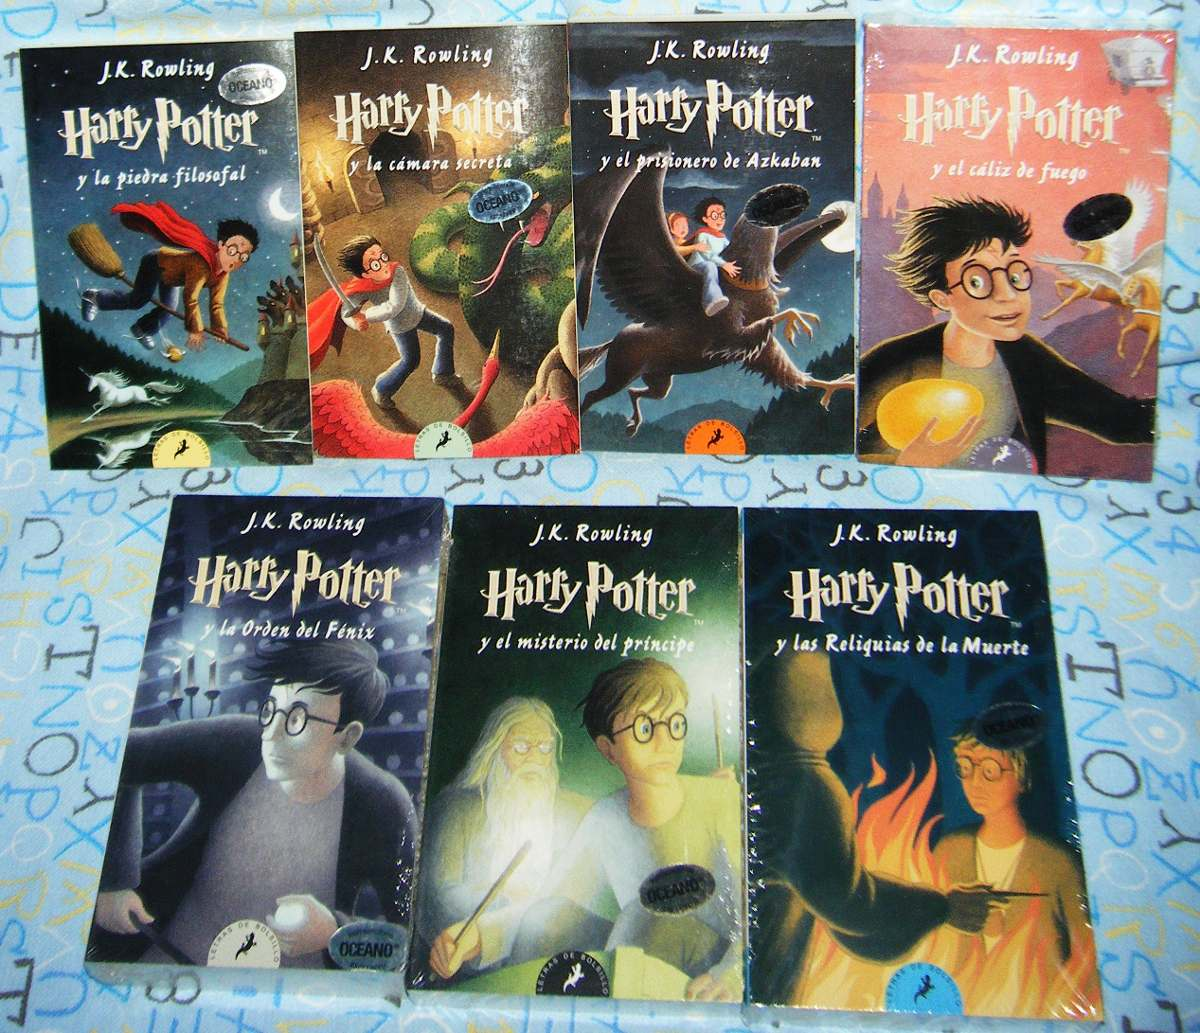 Segundo Libro De Harry Potter Harry Potter Y La Piedra Filosofal Original J K